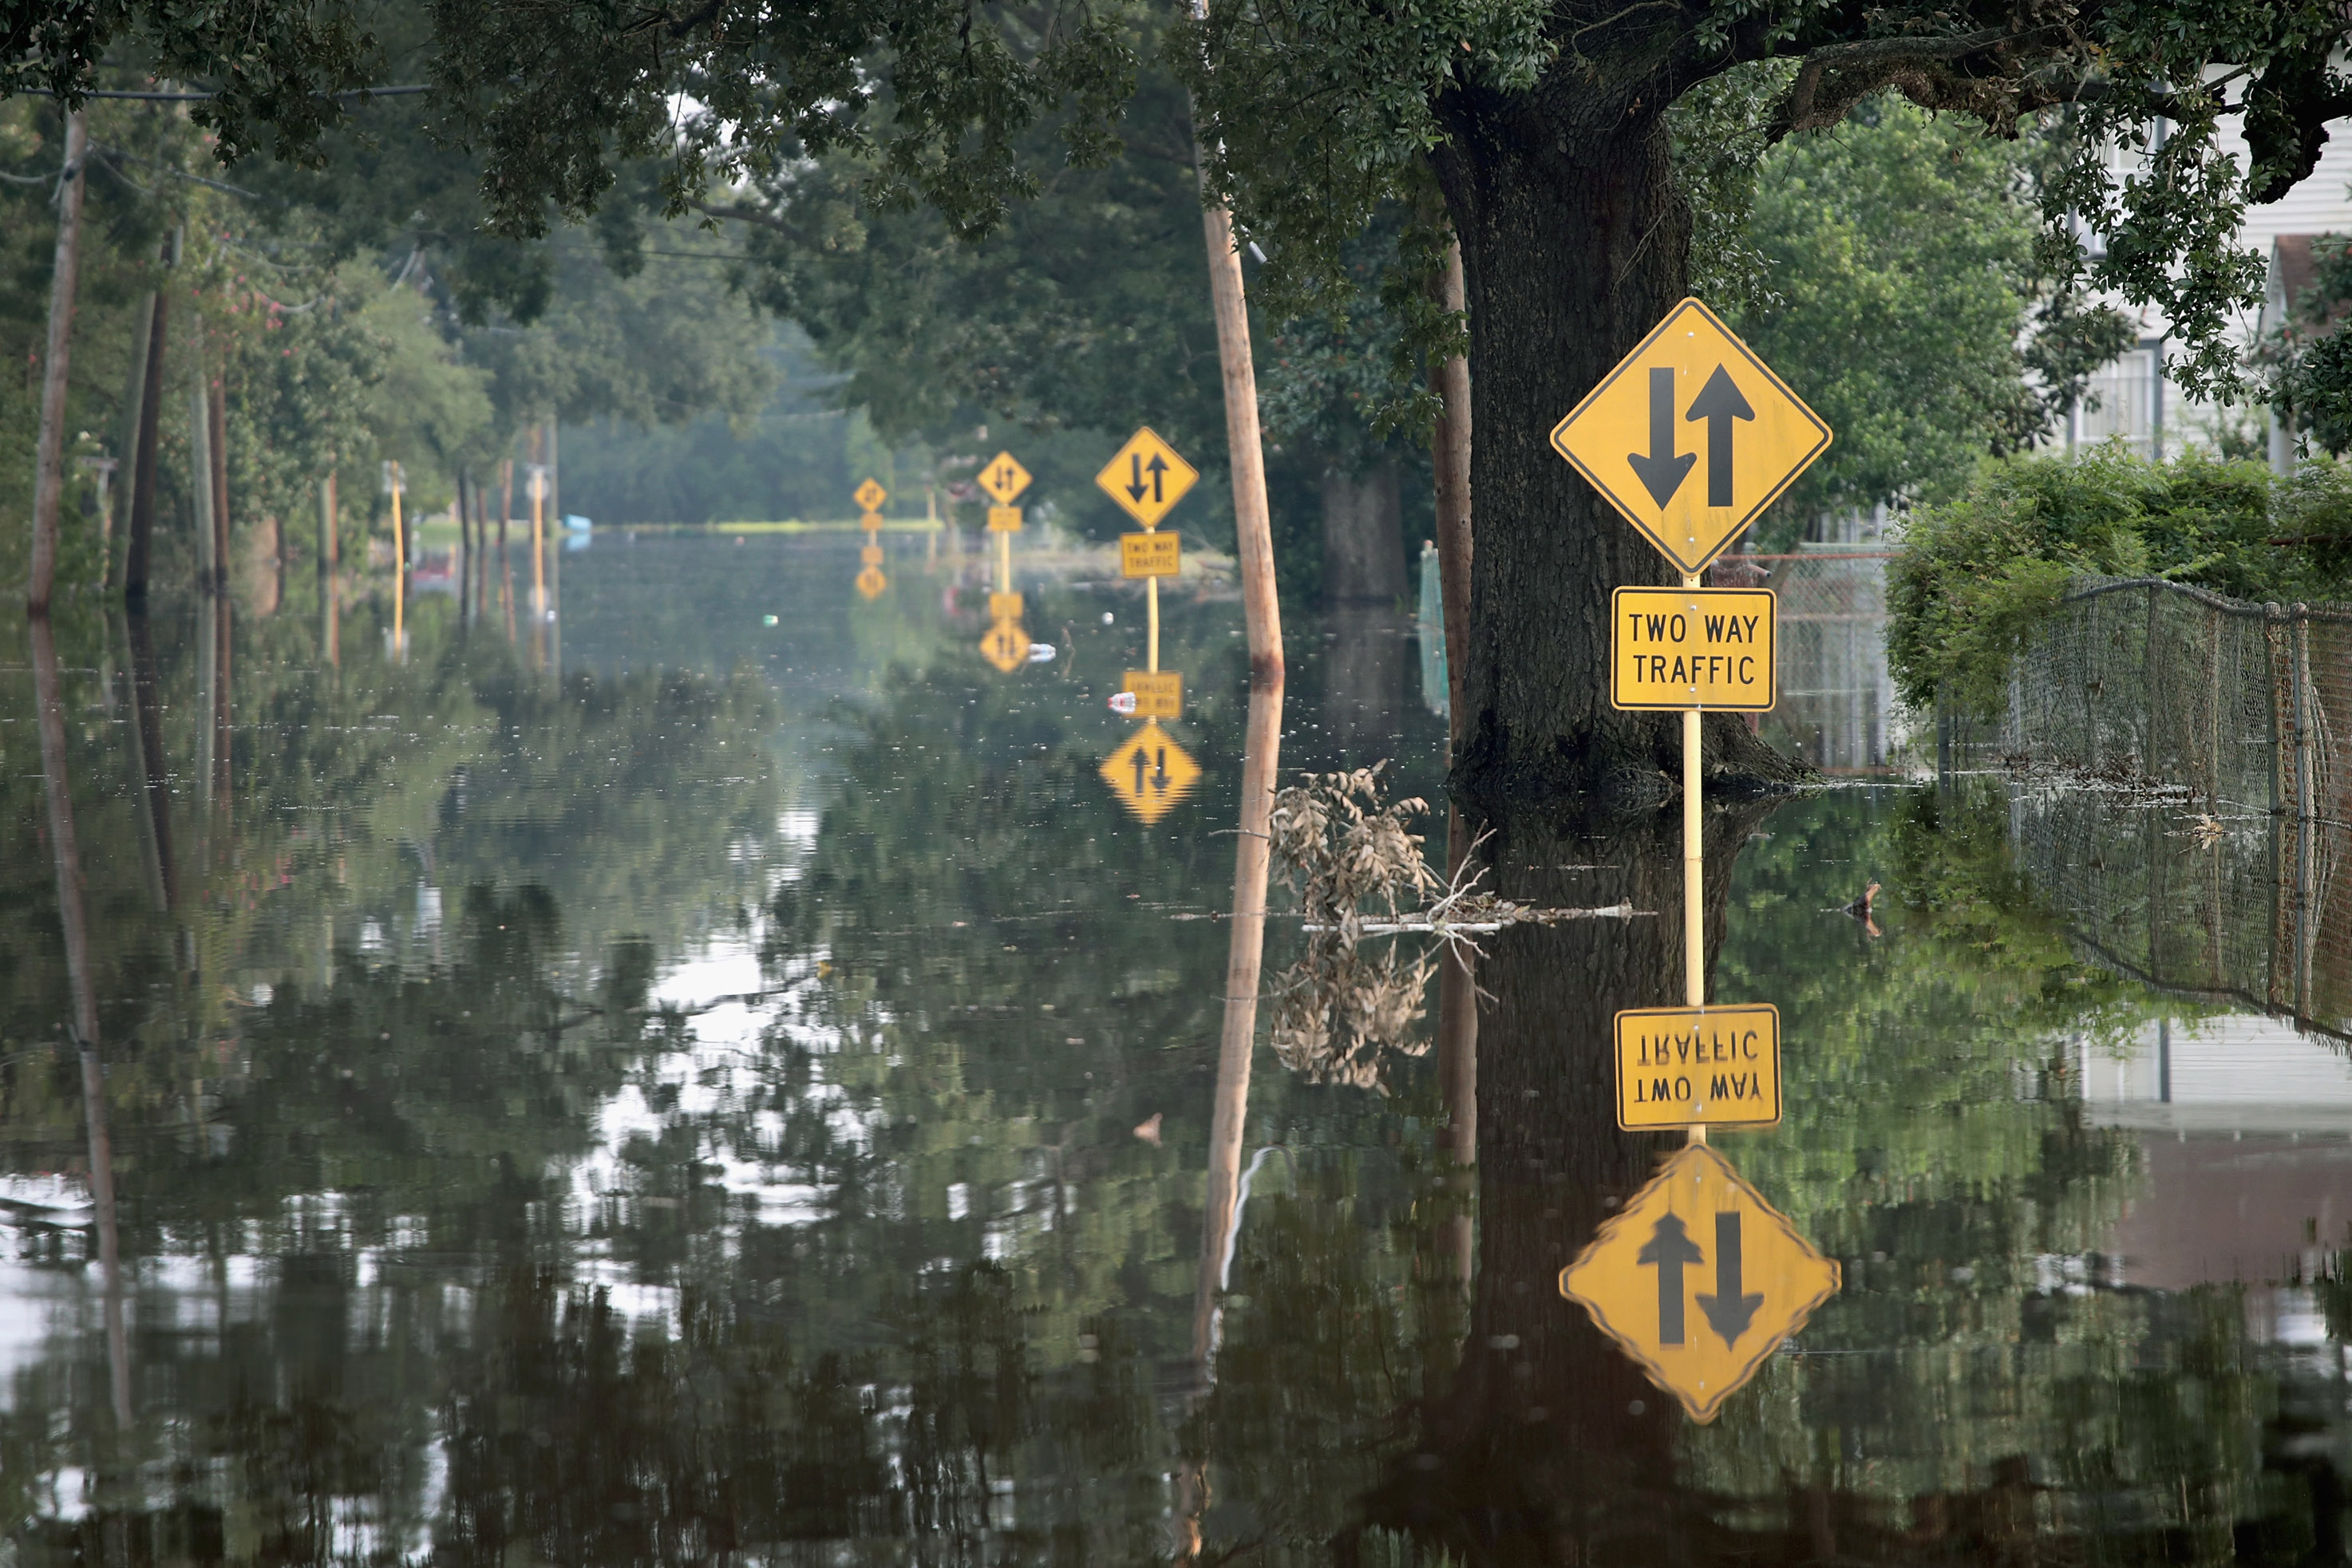 A street is covered with floodwater after torrential rains pounded Southeast Texas following Hurricane Harvey on Sept. 3, 2017 in Orange, Texas.